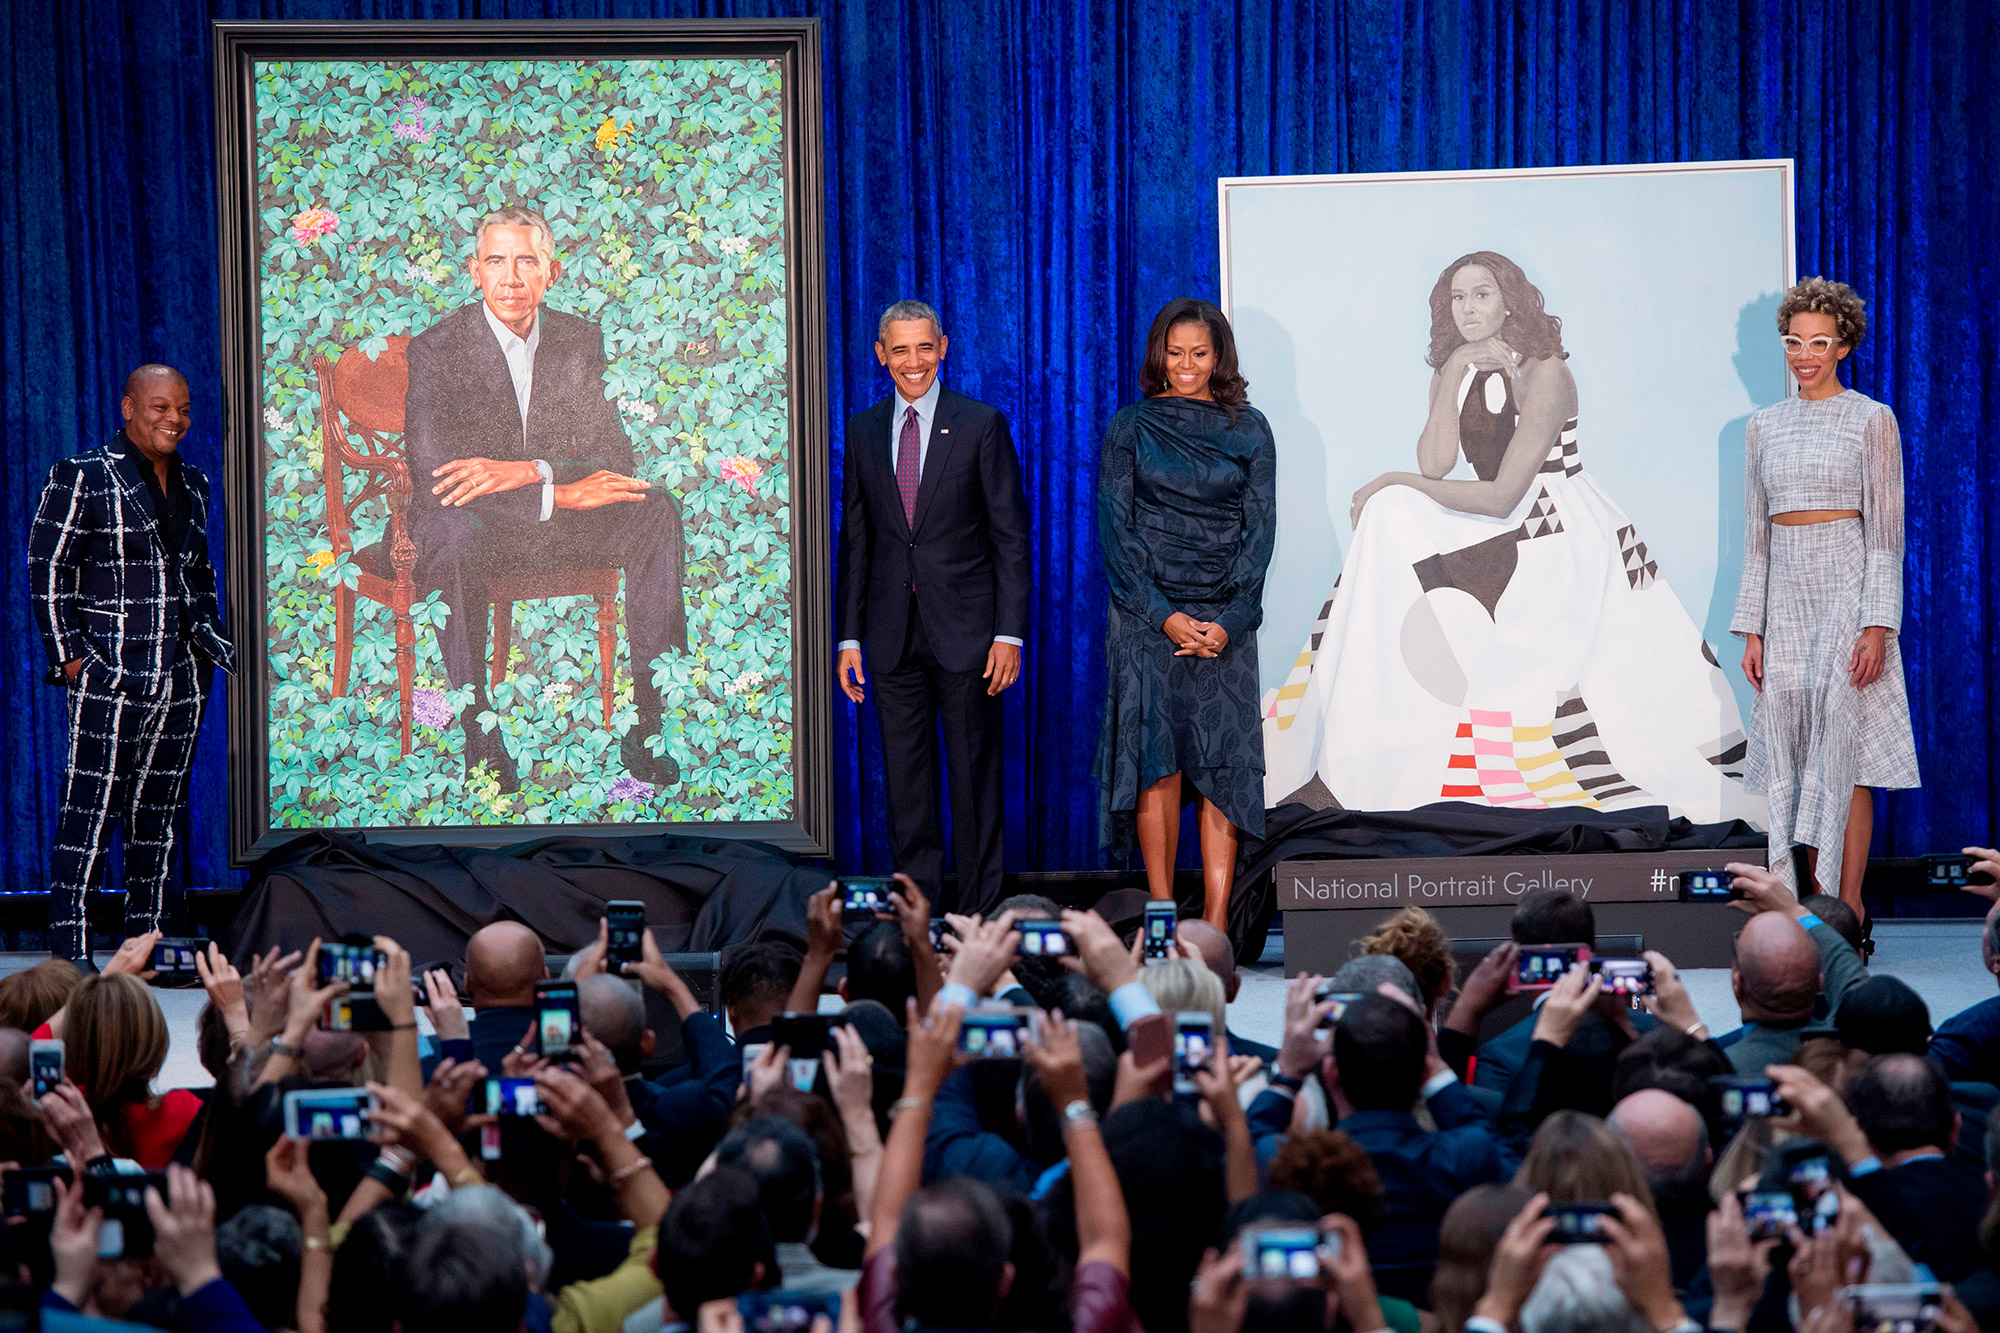 Former US President Barack Obama and First Lady Michelle Obama stand before their portraits and respective artists, Kehinde Wiley (L) and Amy Sherald (R), after an unveiling at the Smithsonian's National Portrait Gallery in Washington, DC, February 12, 2018